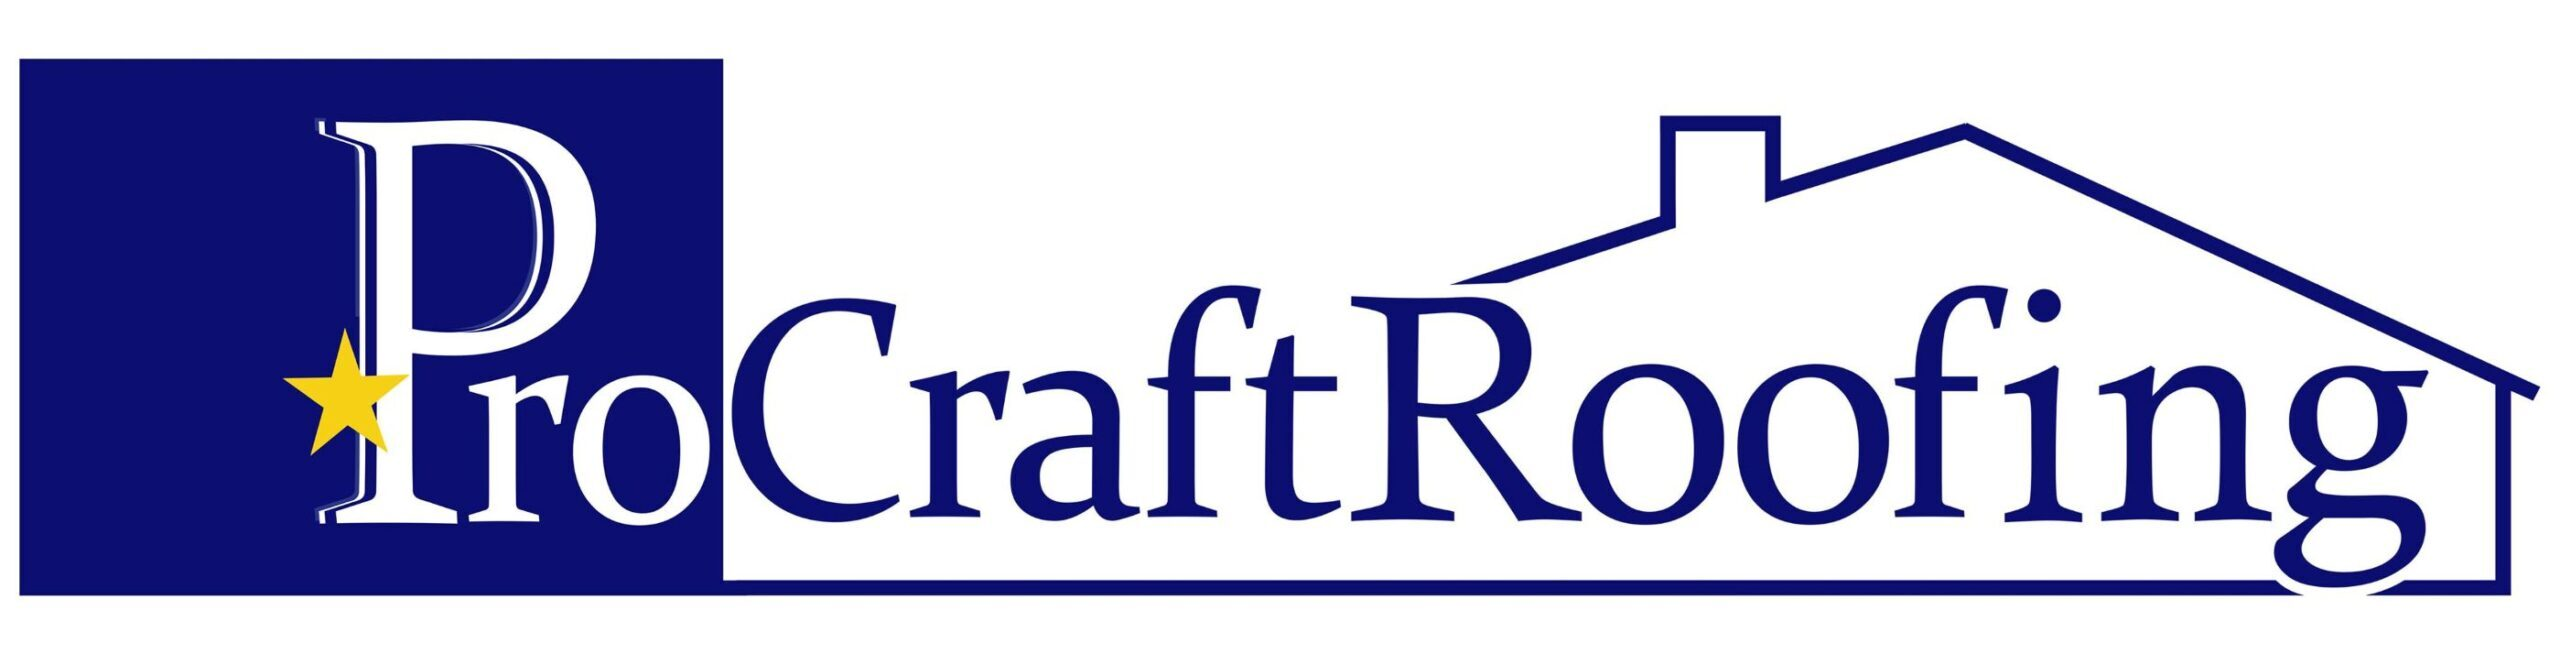 ProCraft Roofing